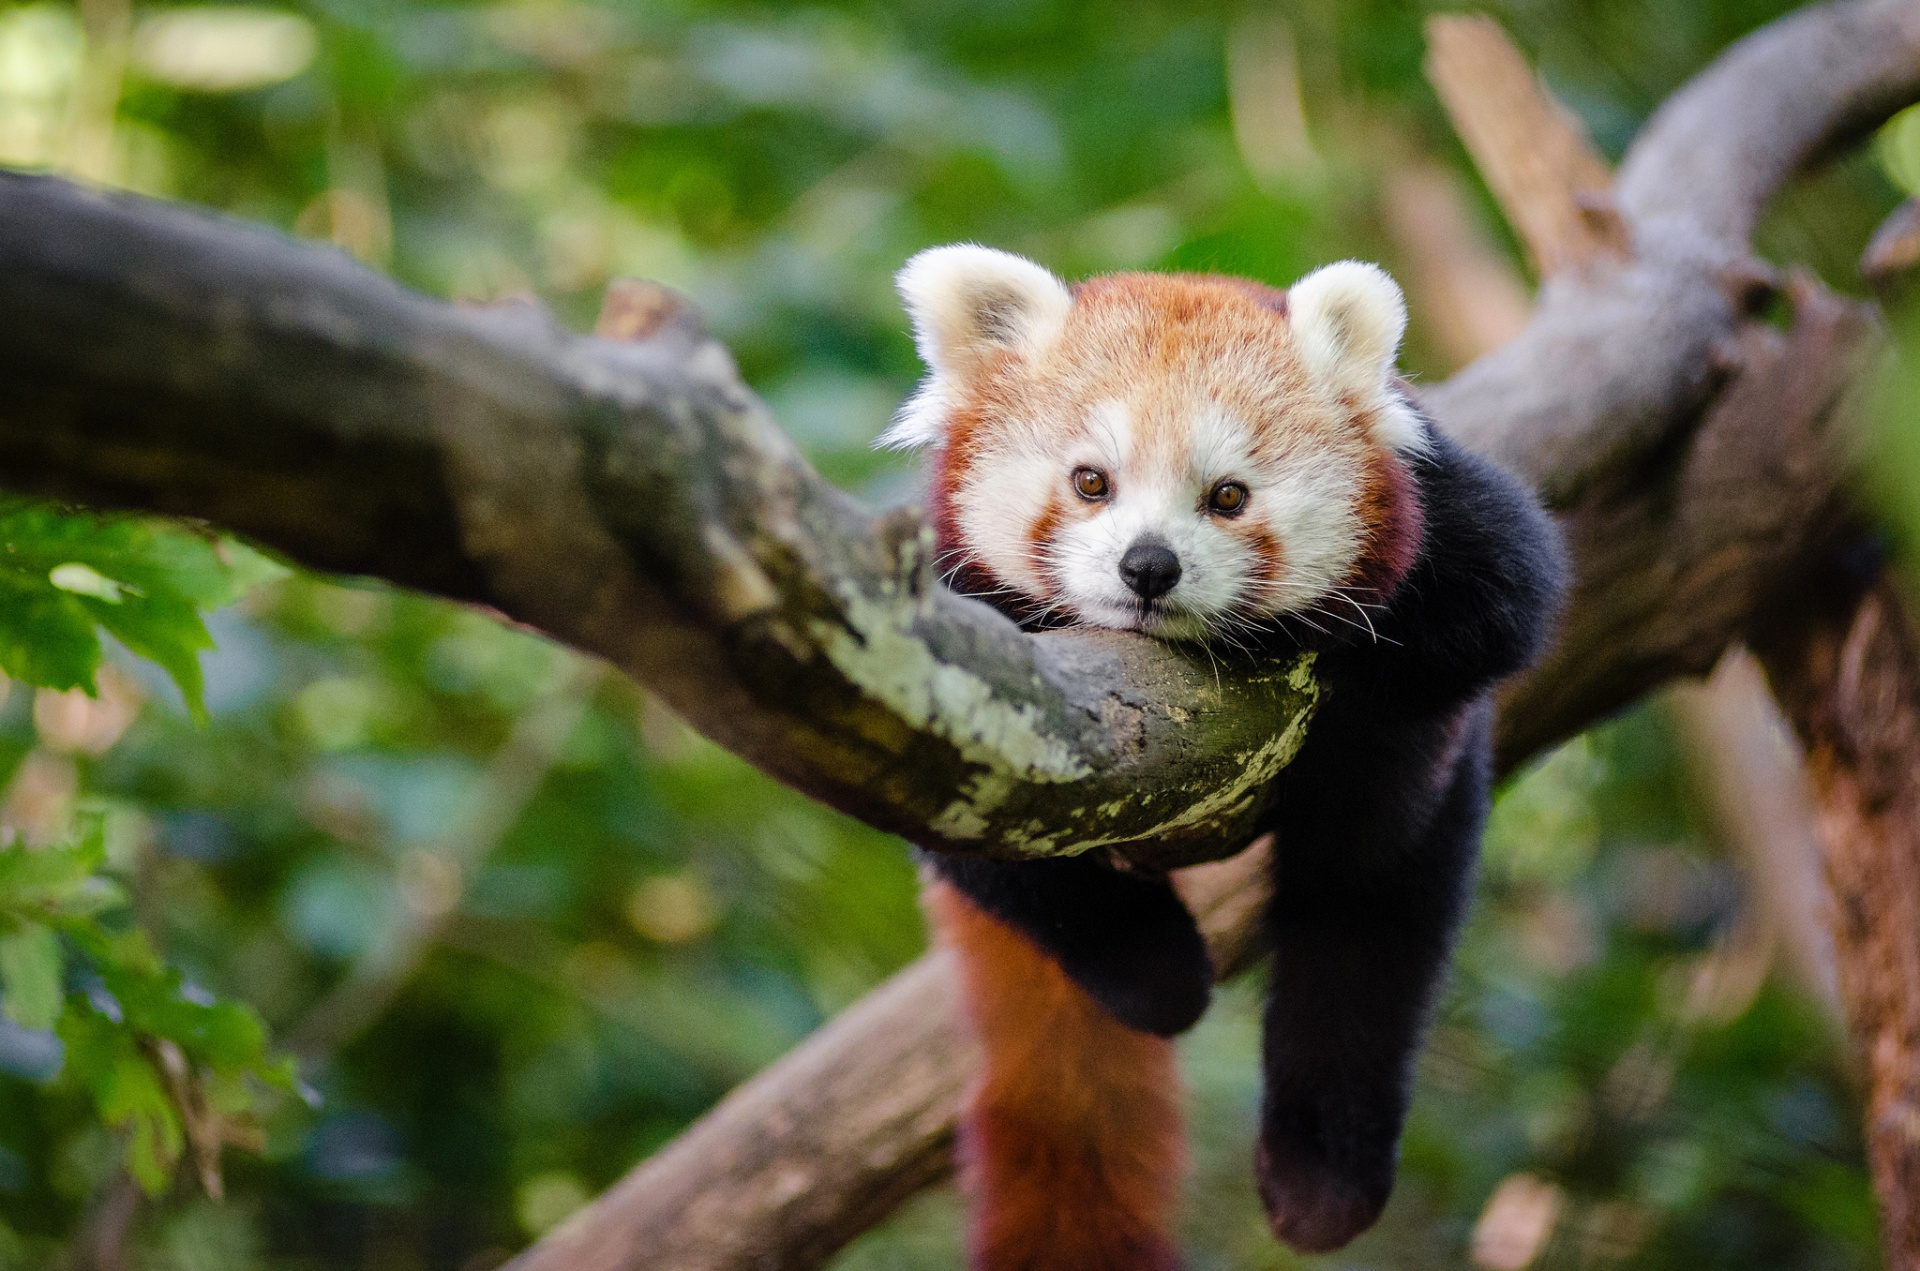 Cute Sleeping Puppy Wallpaper Red Panda Panda Free Stock Photo Public Domain Pictures